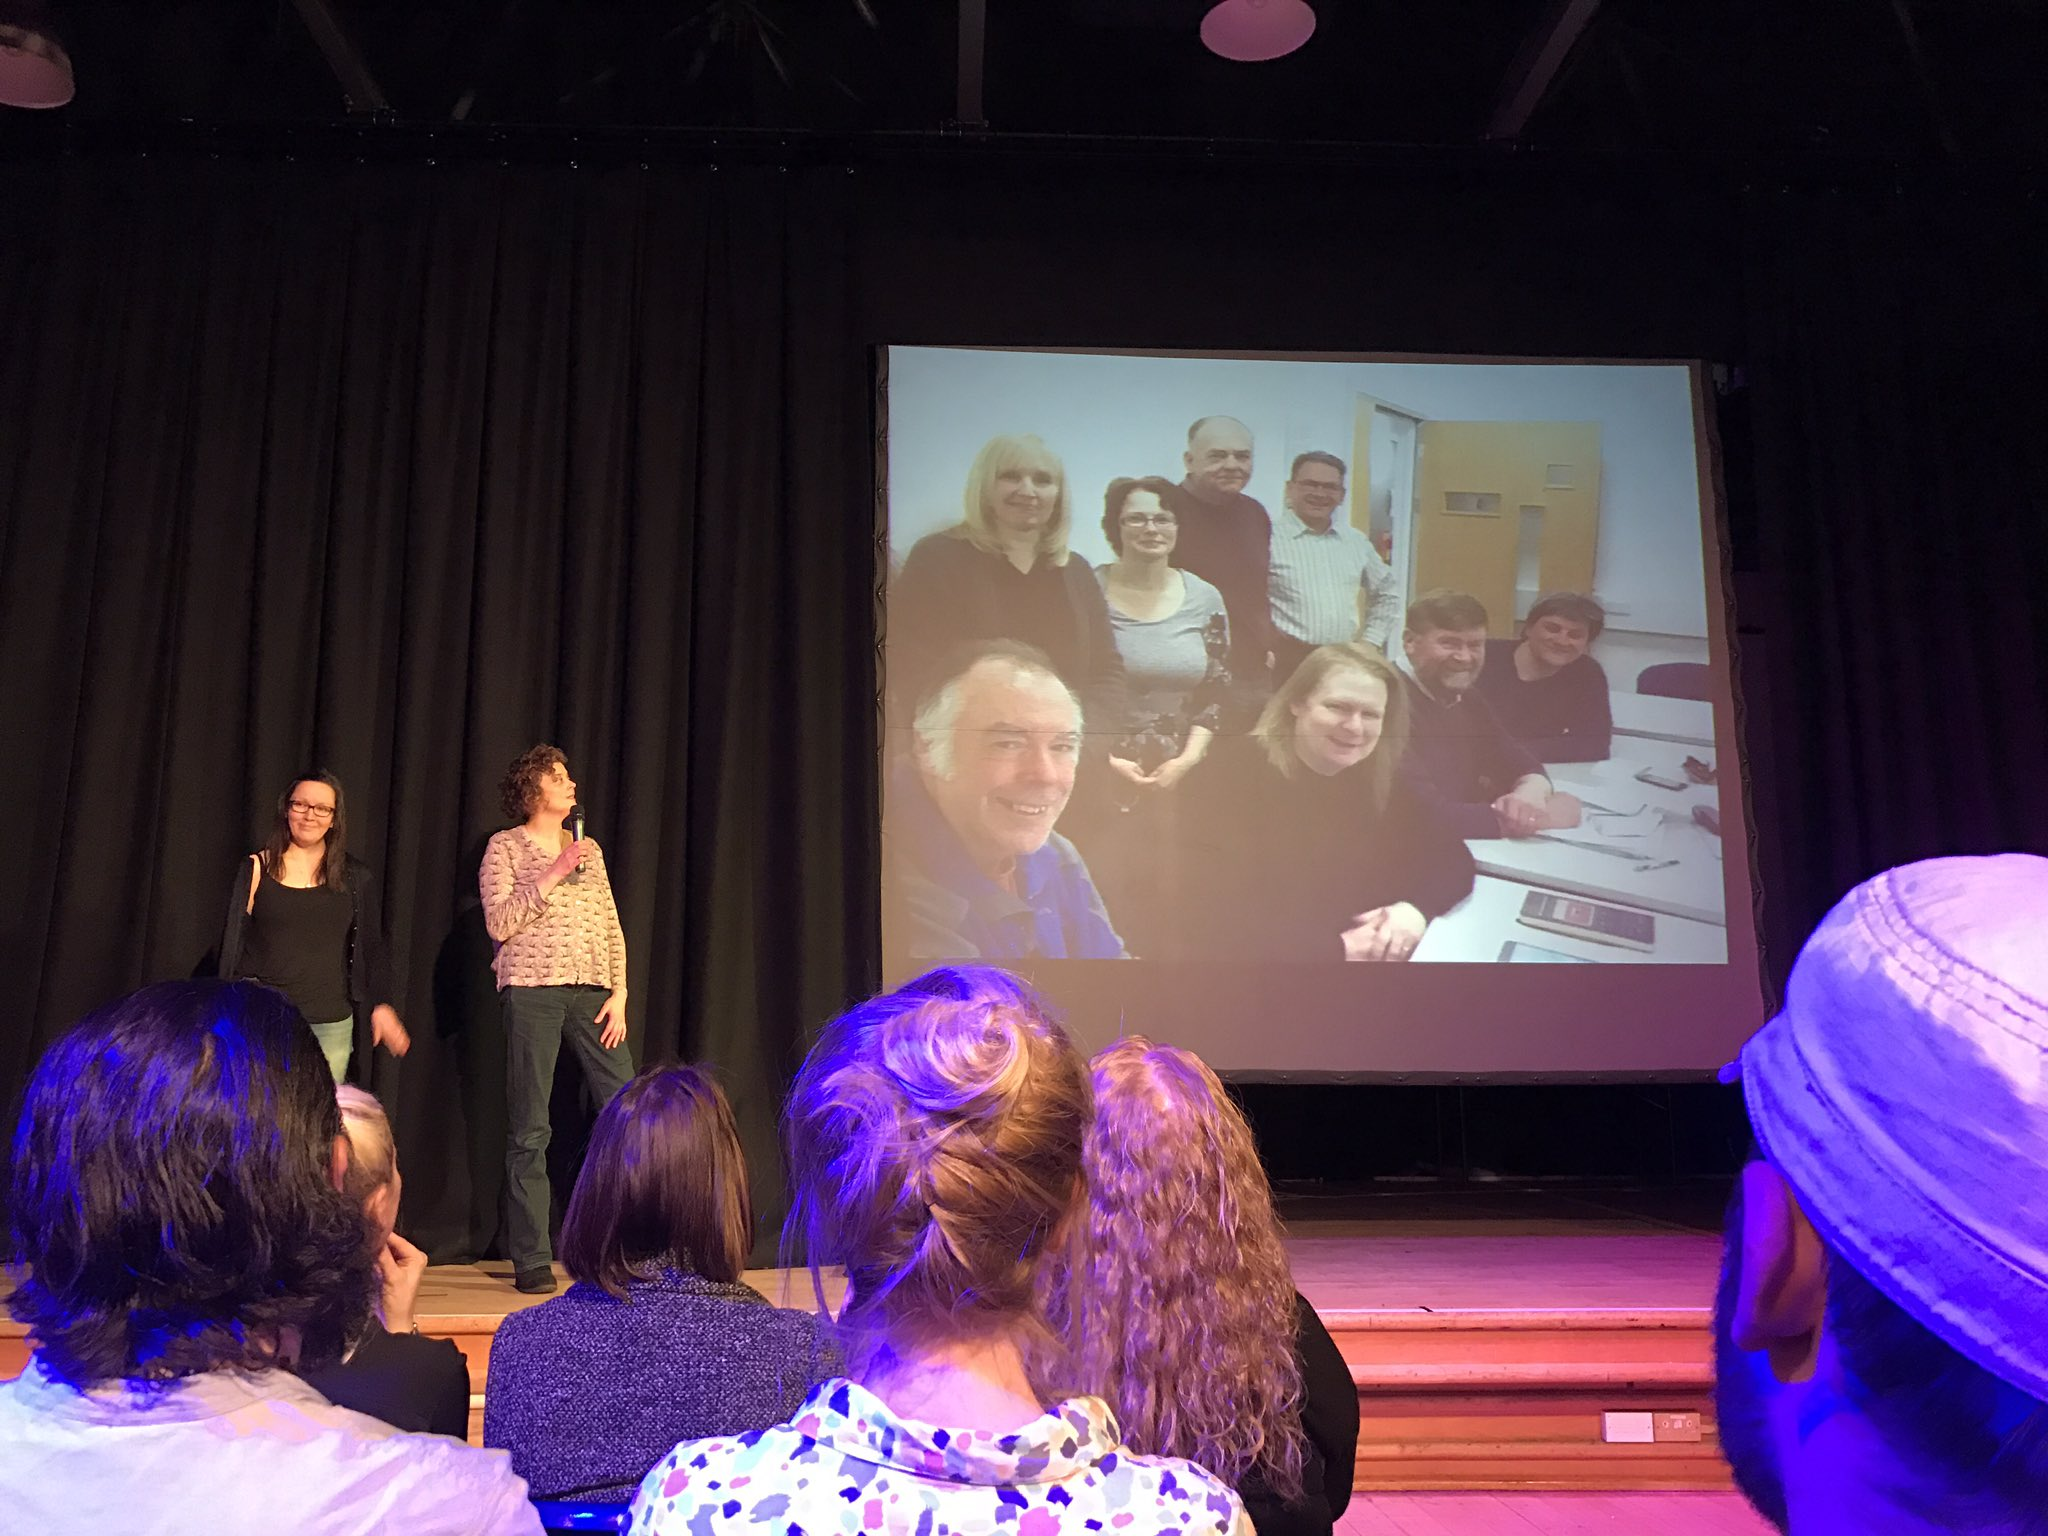 Exploring @NGWriters - a group of poets and storytellers in Dundee #PKN_DND https://t.co/fWL9SwqbC9